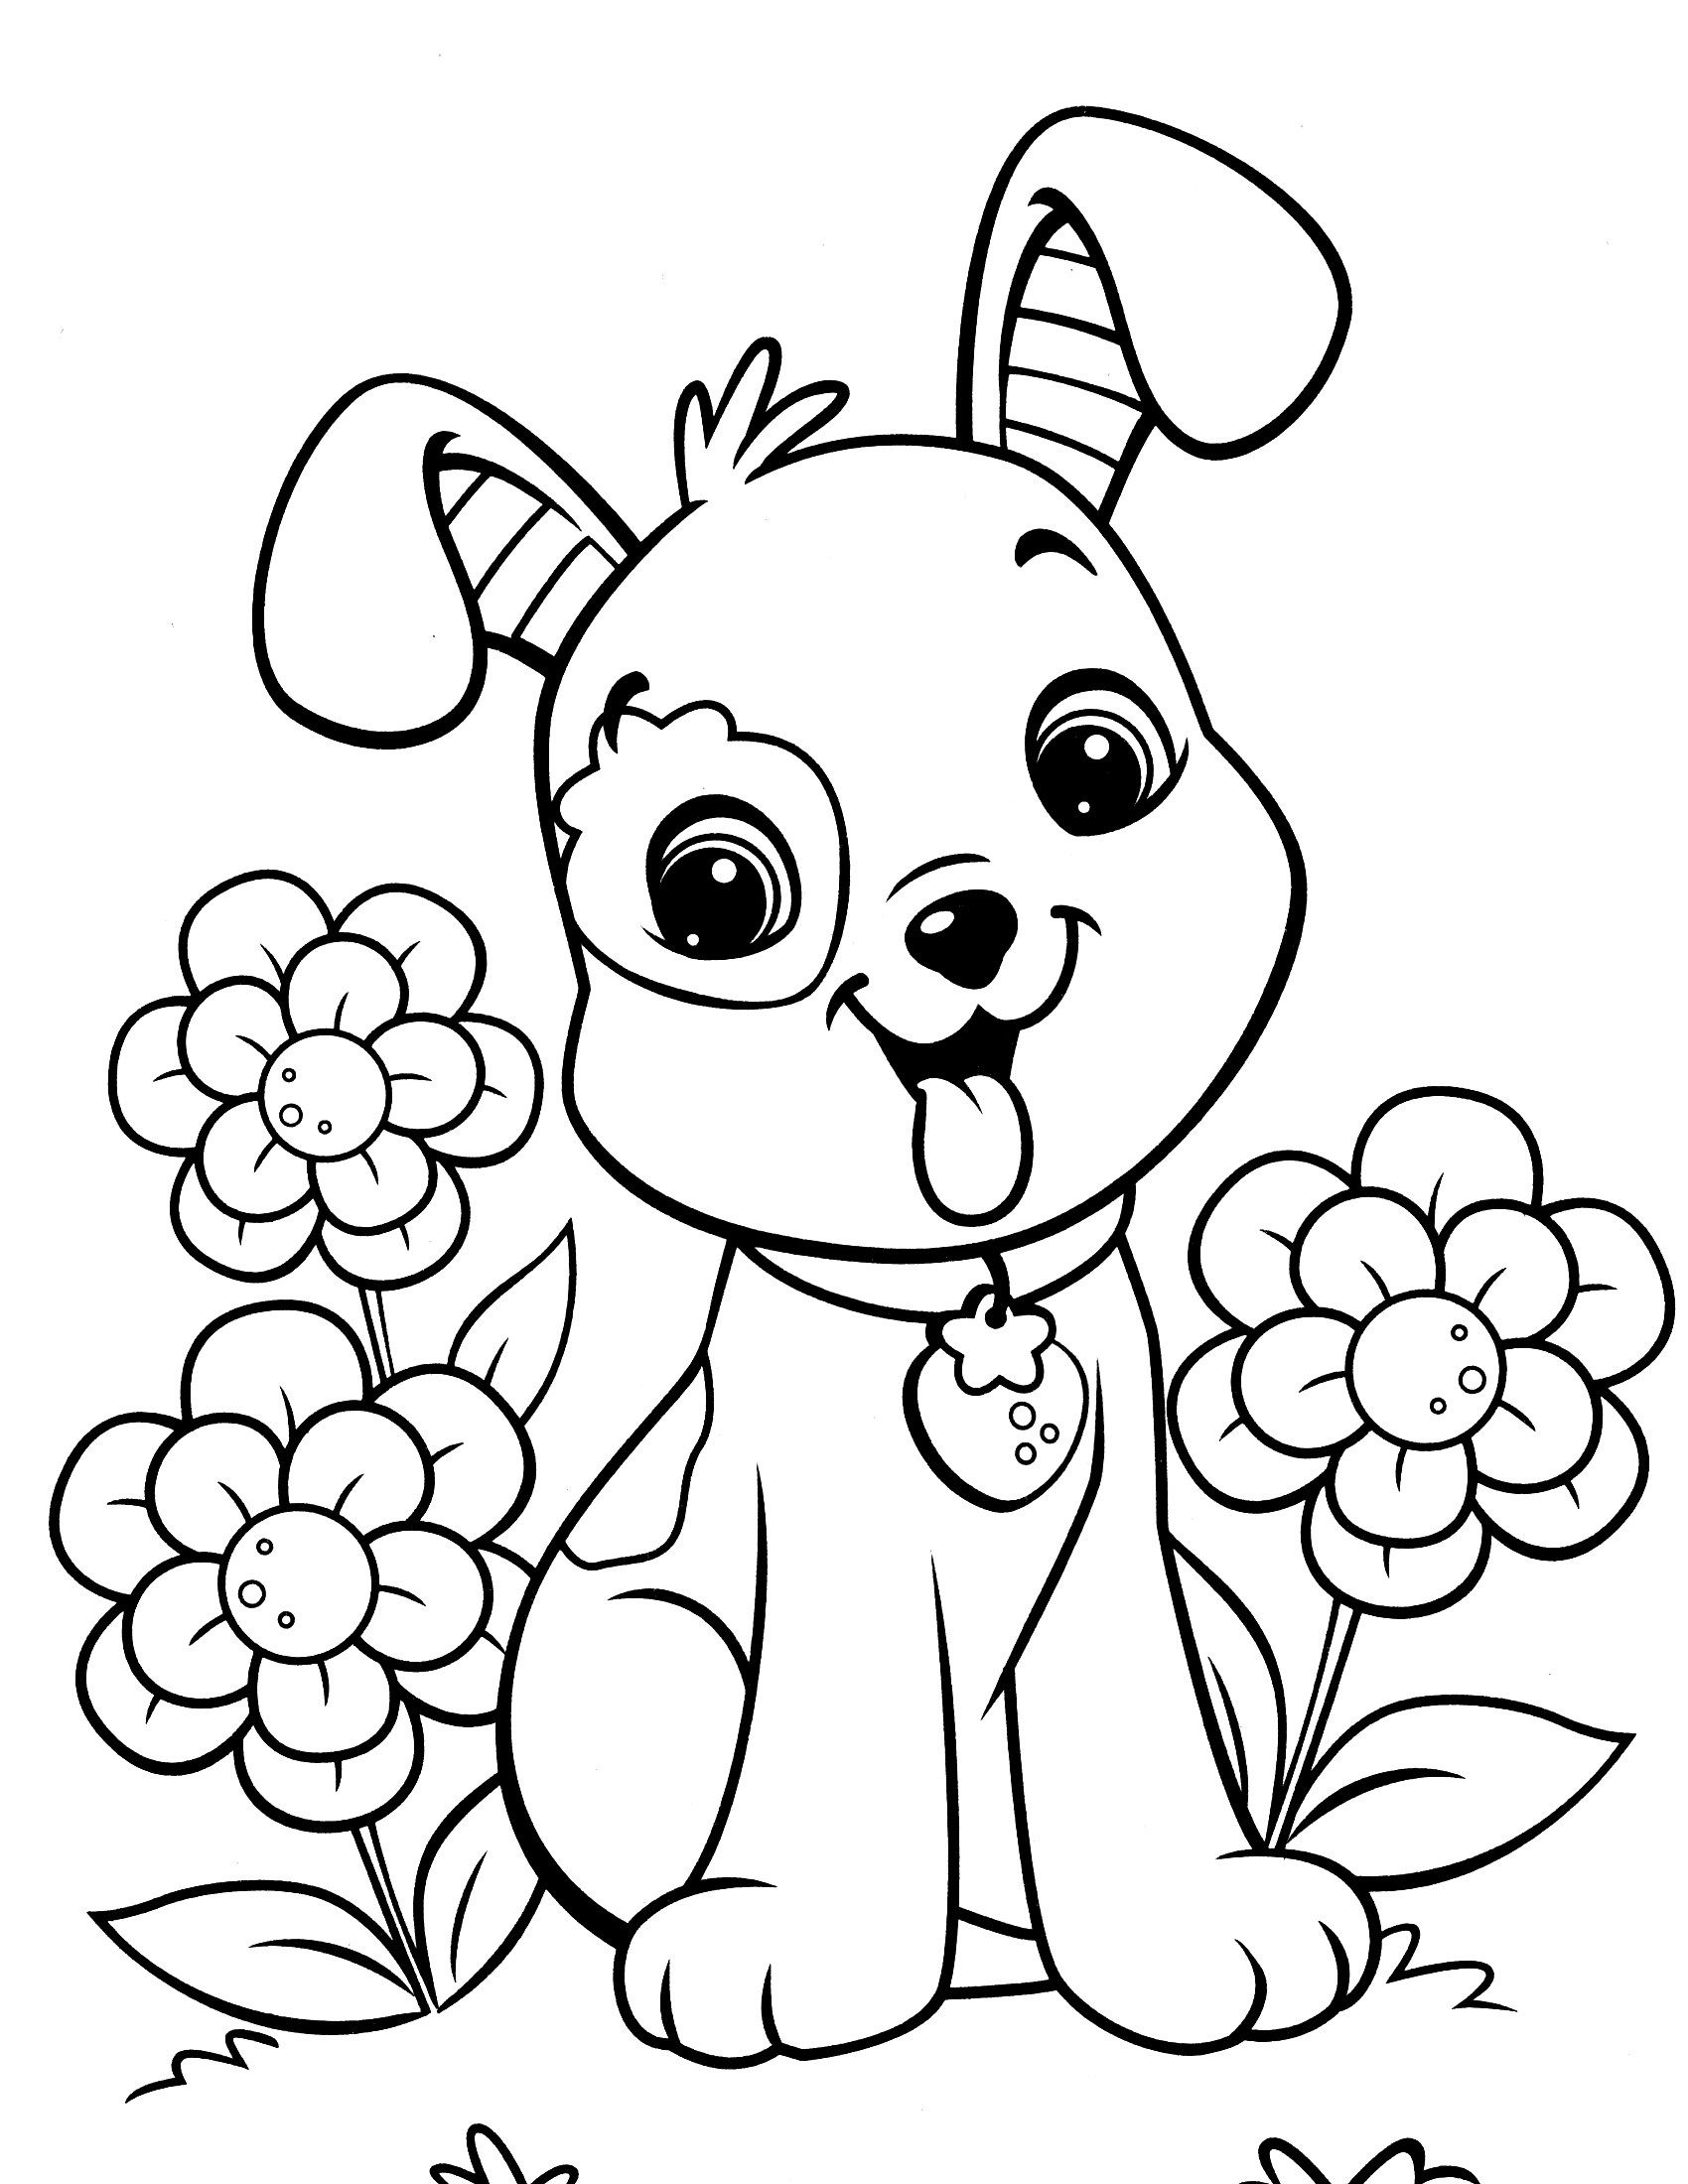 free dog coloring pages Image result for free dog coloring pages | Clipart, Ephemera  free dog coloring pages